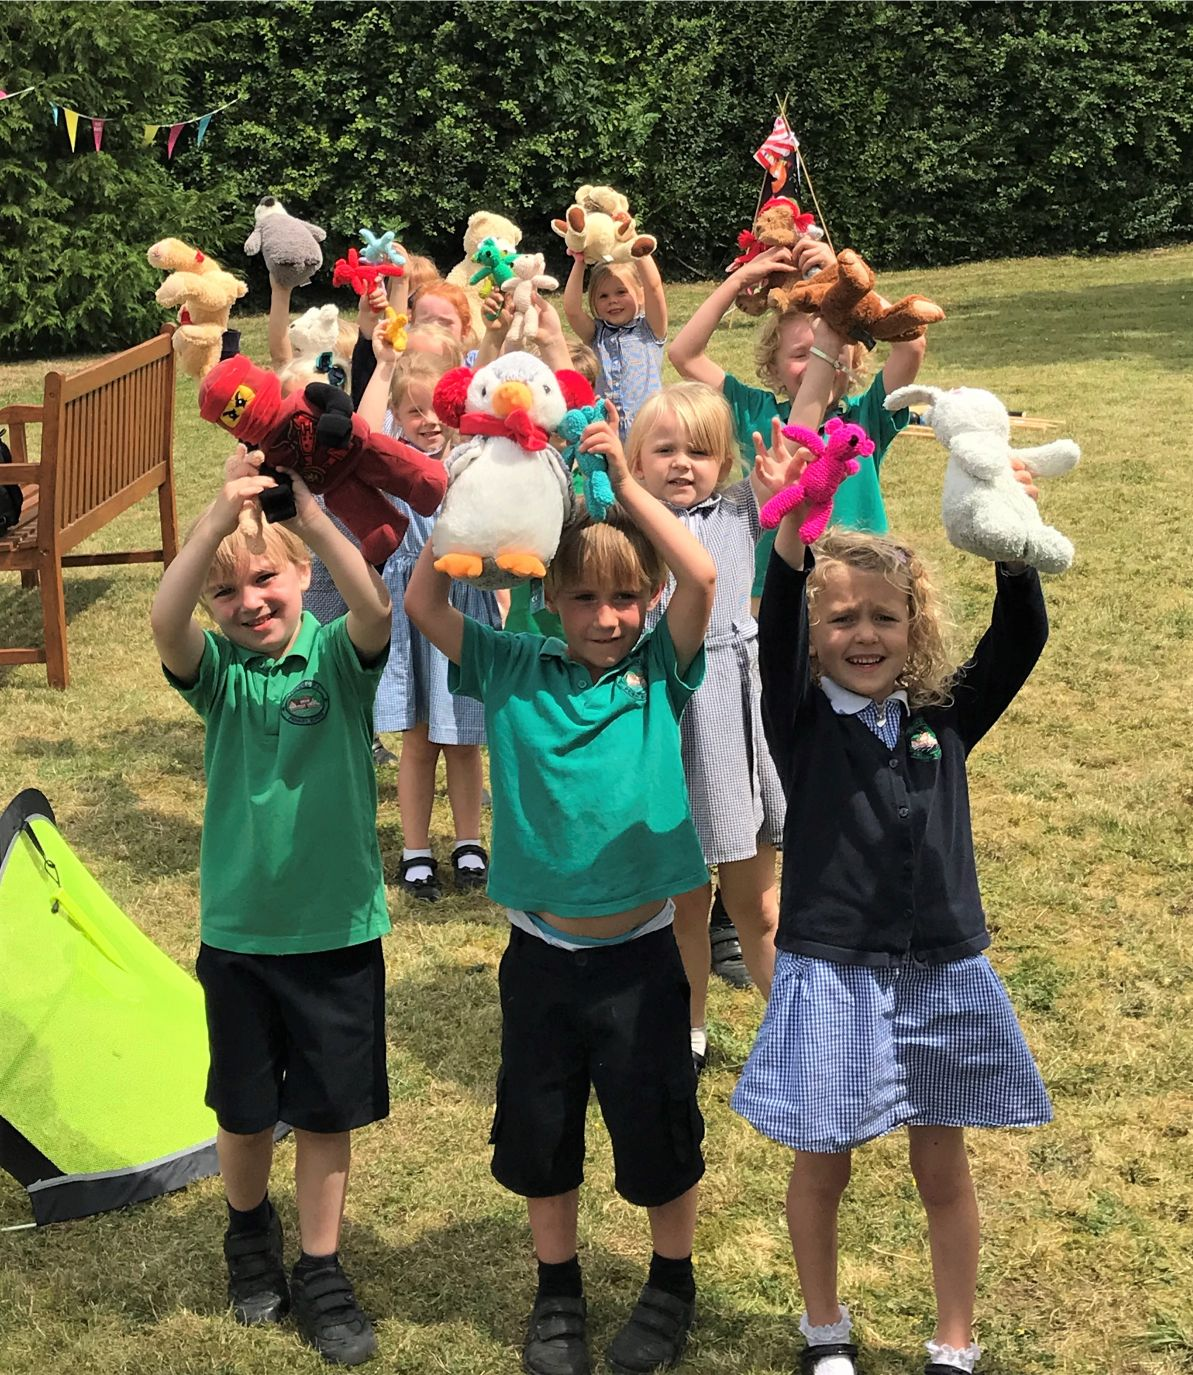 Hempton Field Care Home, Oxfordshire-The children from Lewknor Primary School with their teddies